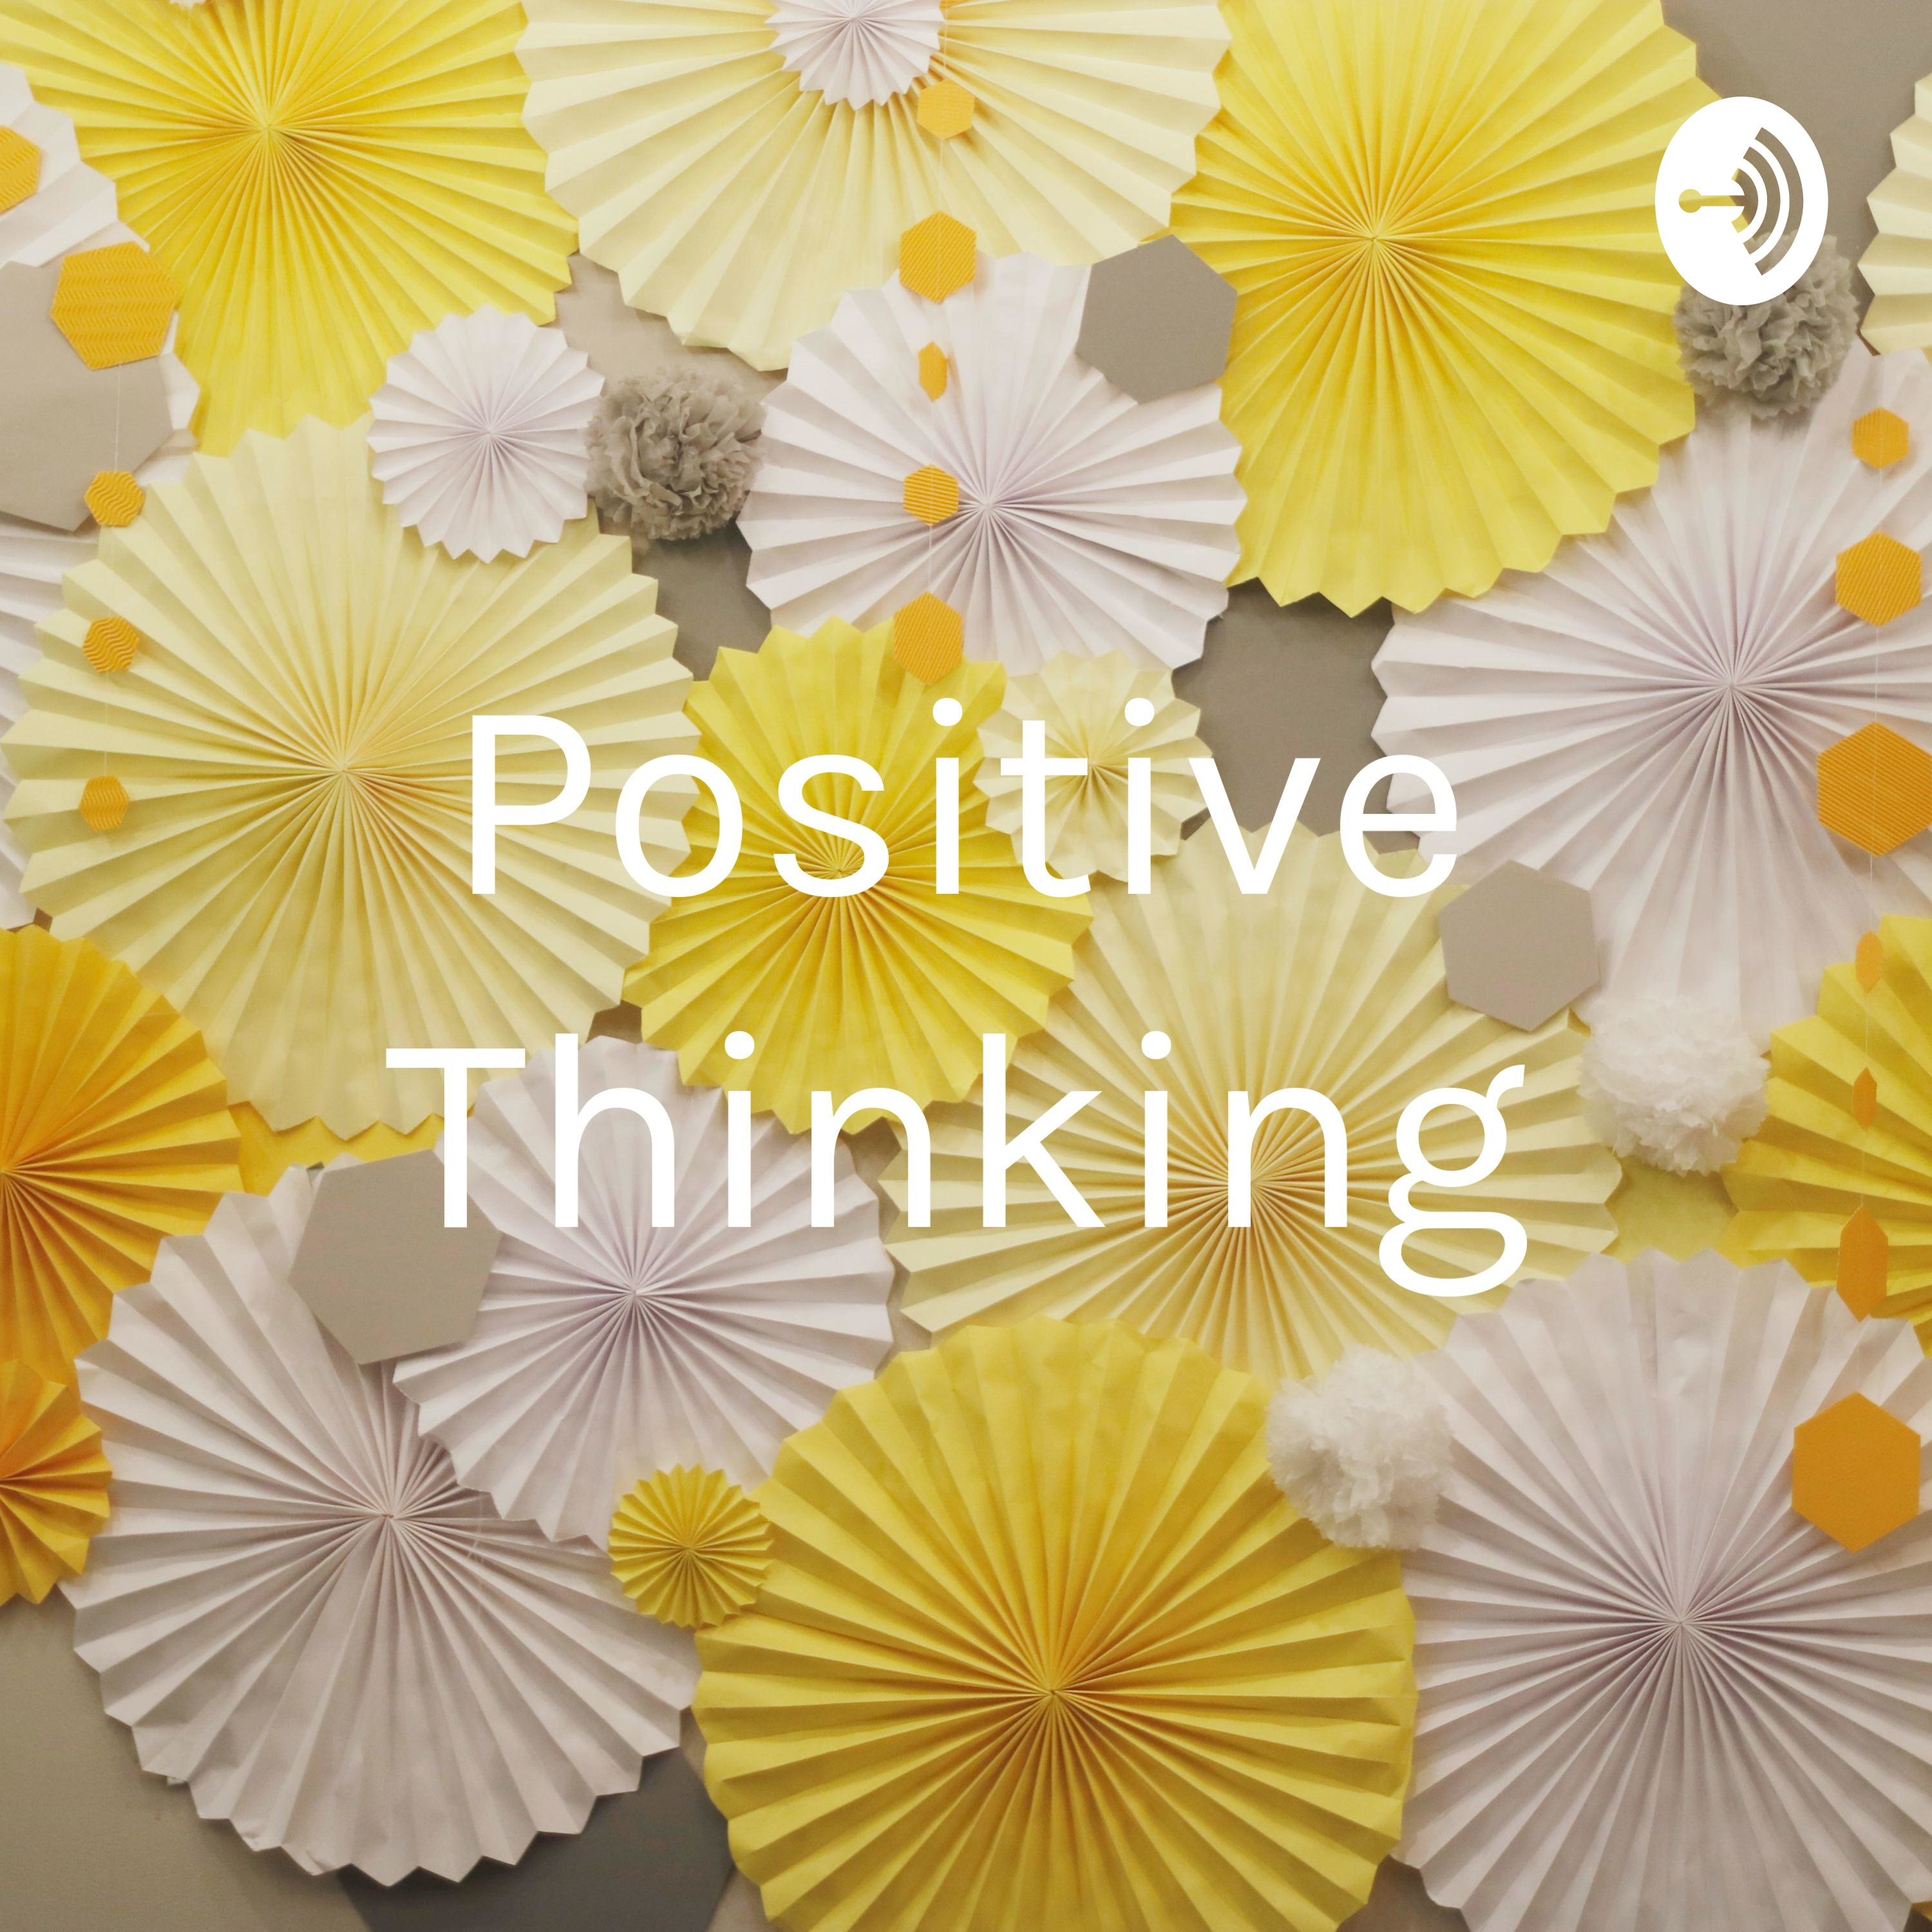 25th August - Focus on Positive Things in Life